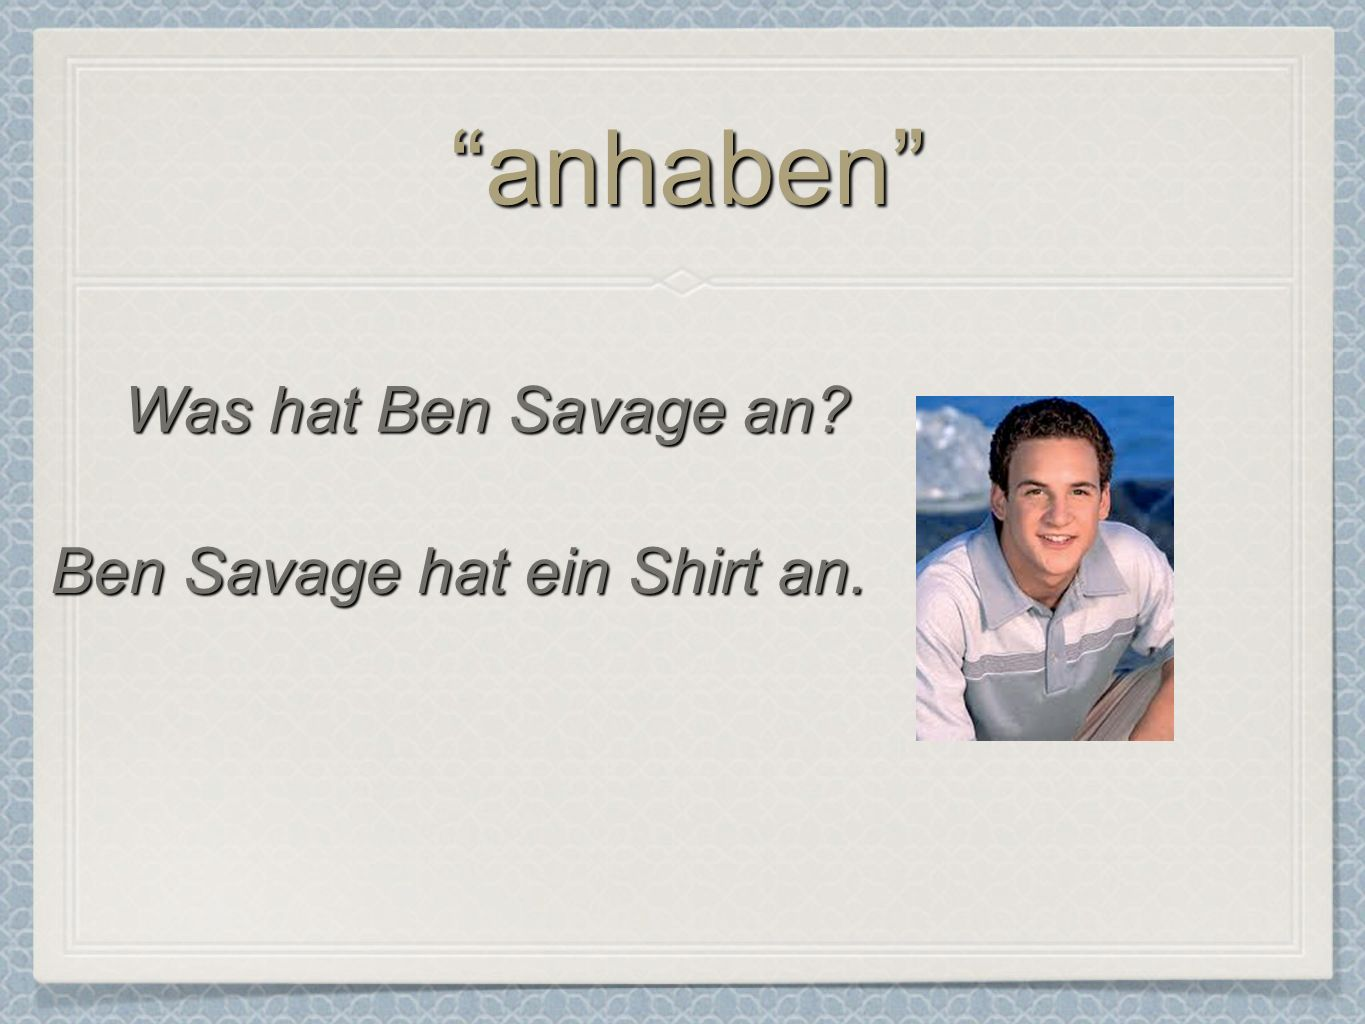 Ben Savage hat ein Shirt an.